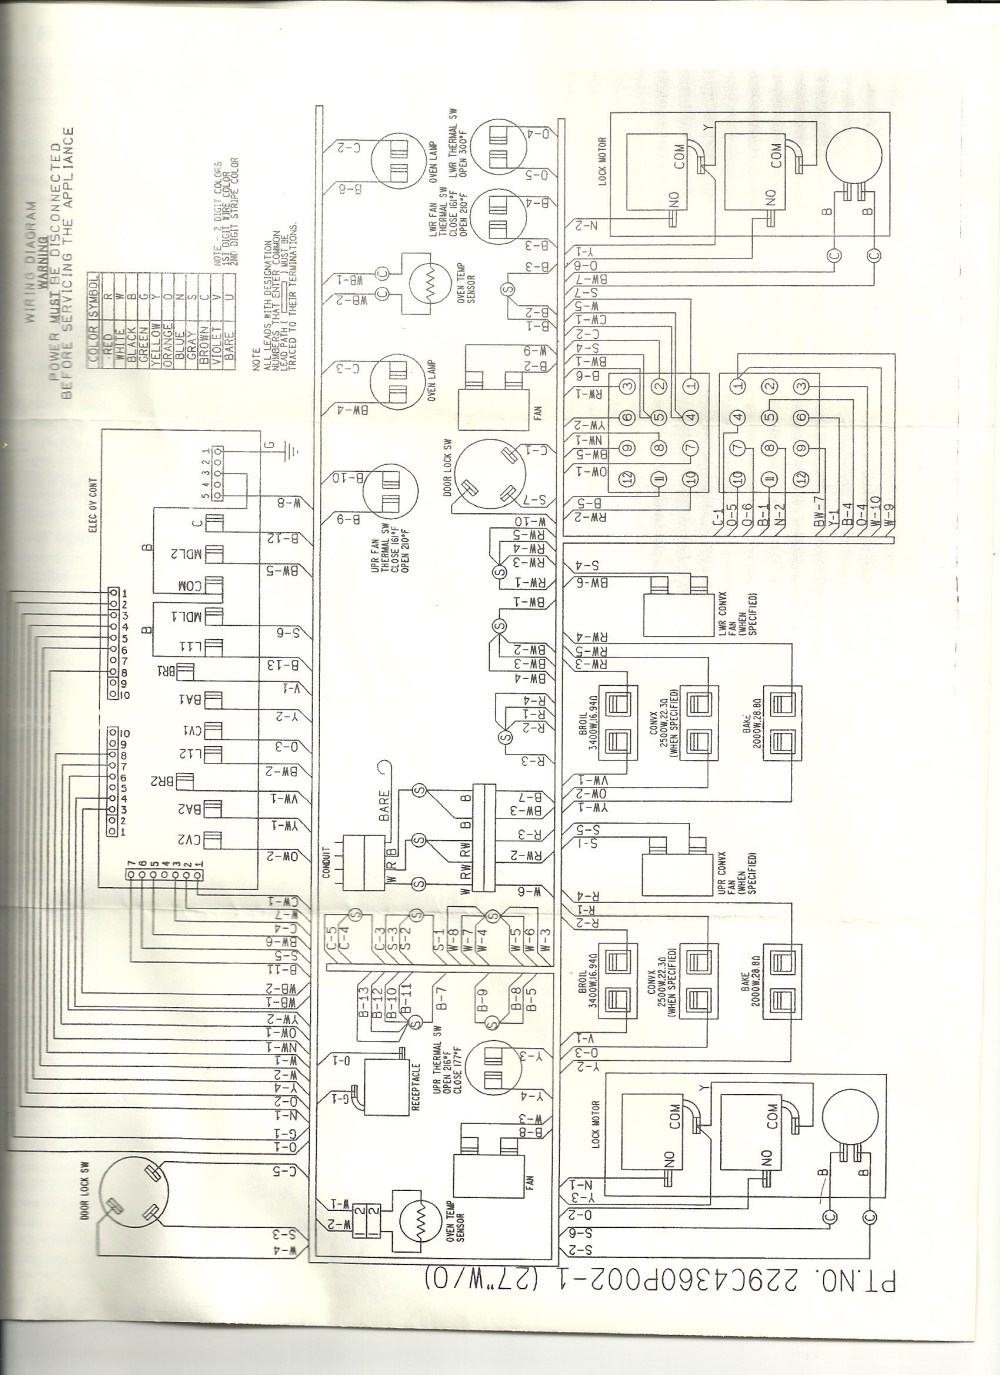 medium resolution of ge washer wiring diagram wiring diagram for a ge dryer new ge profile dryer electrical